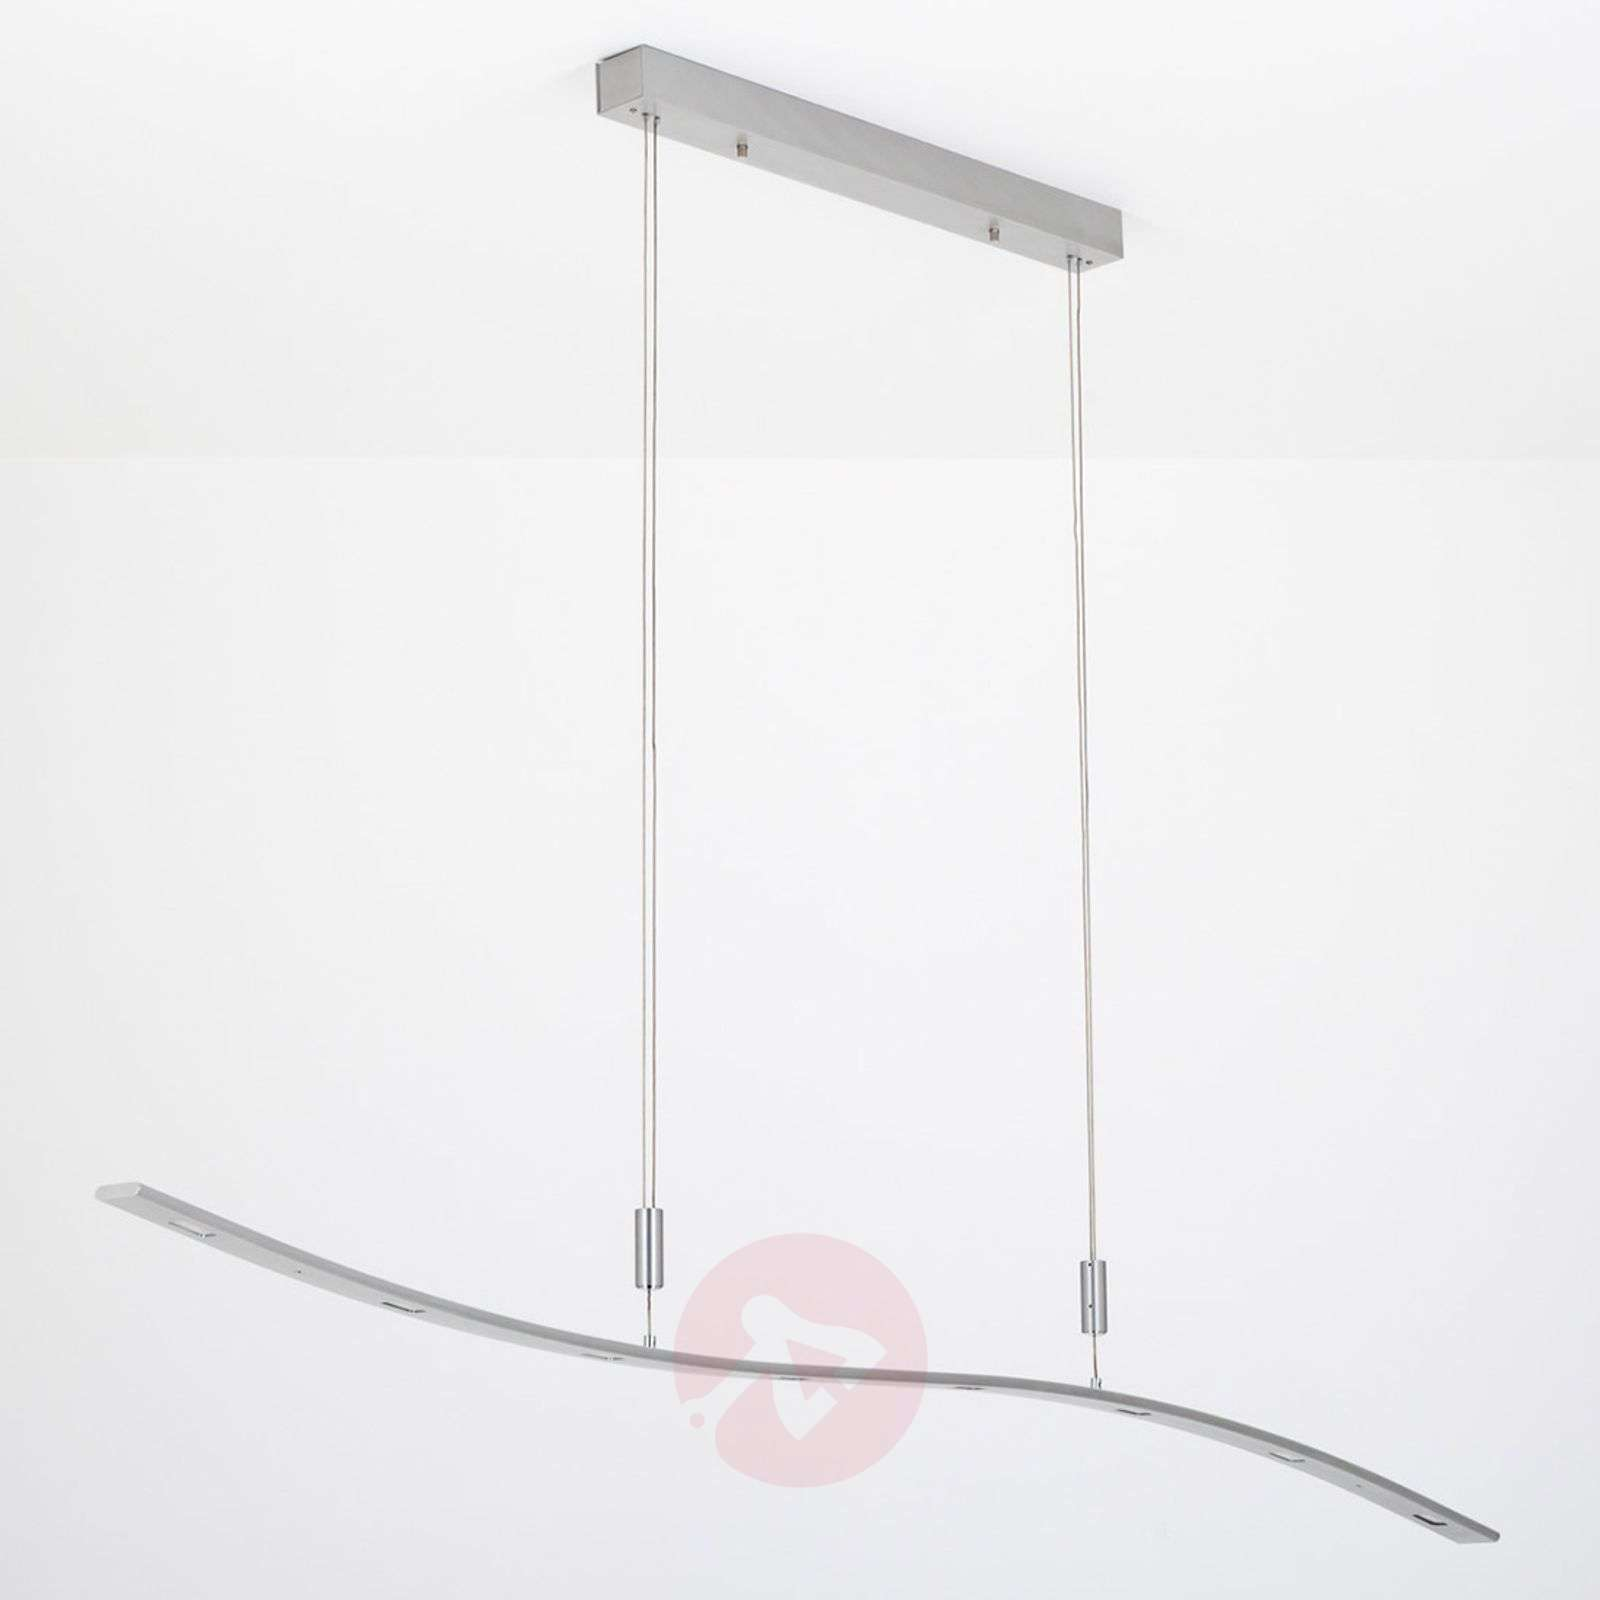 Height Adjustable Led Pendant Light Drop: Xalu - Height-adjustable LED Pendant Lamp, 160 Cm